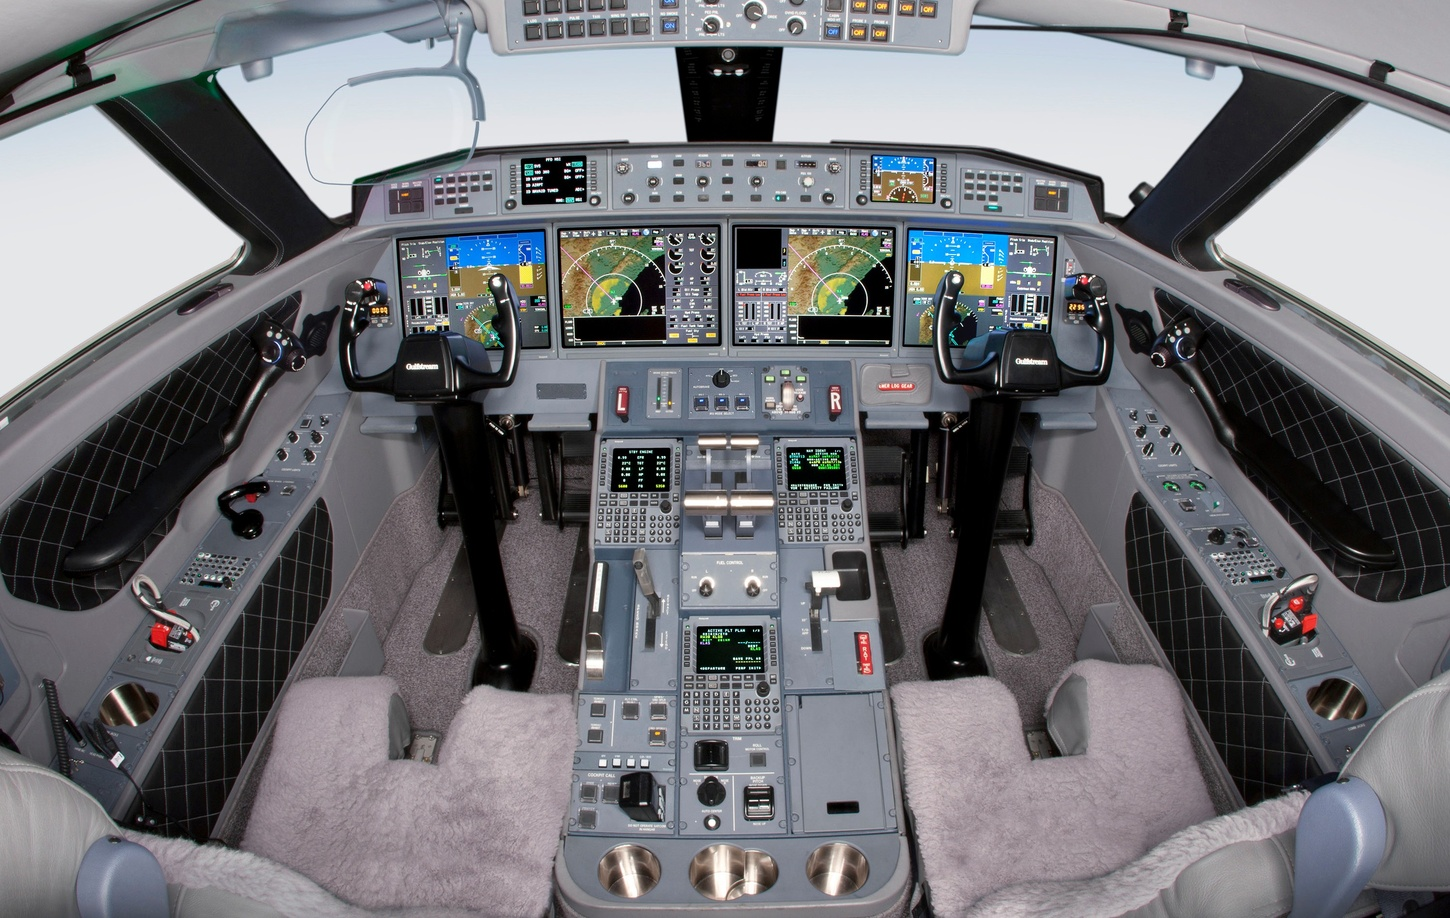 Interior of cockpit